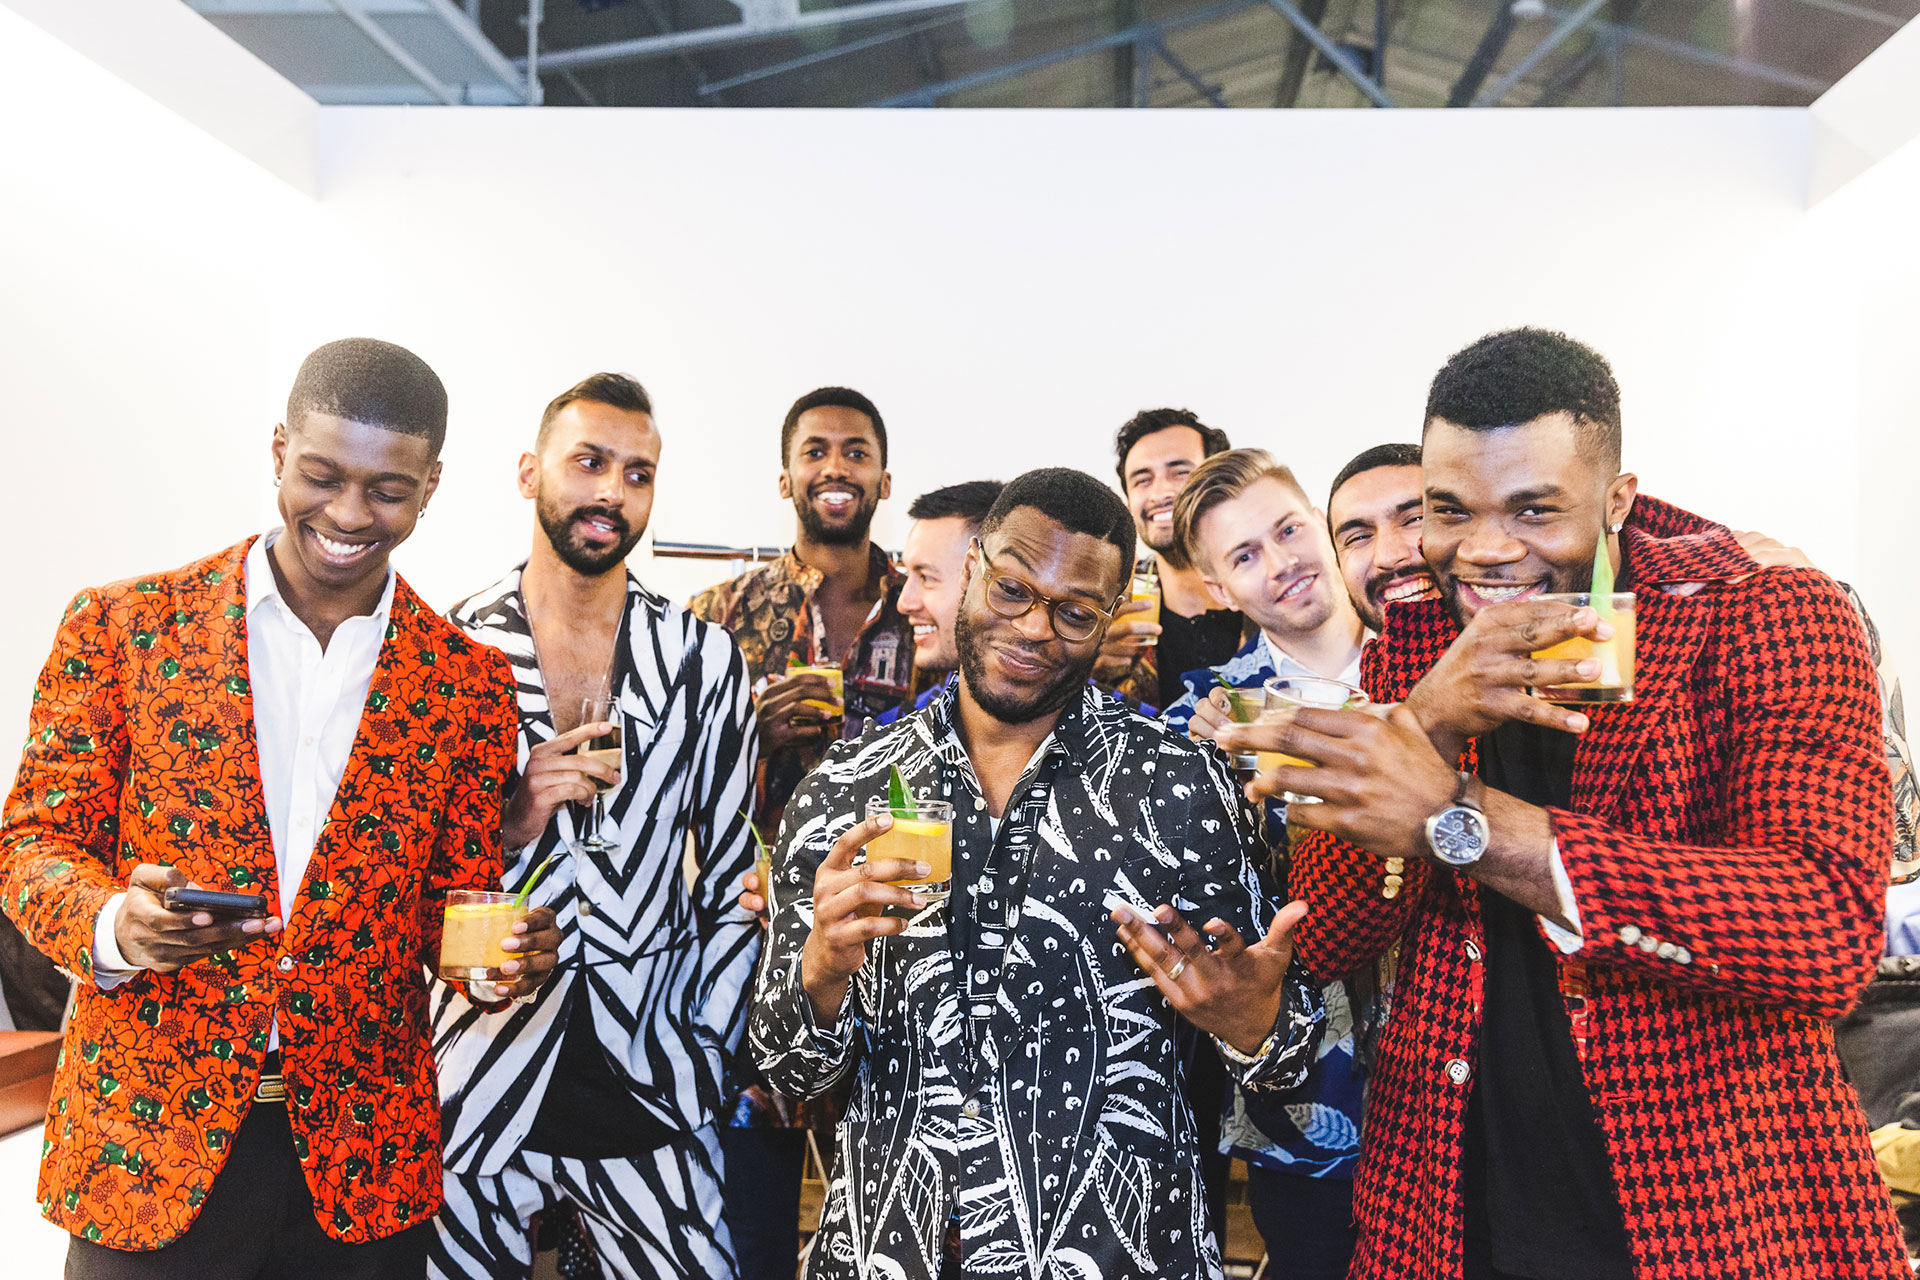 Walé Oyéjidé and a group of young men, gathered together with cocktails.